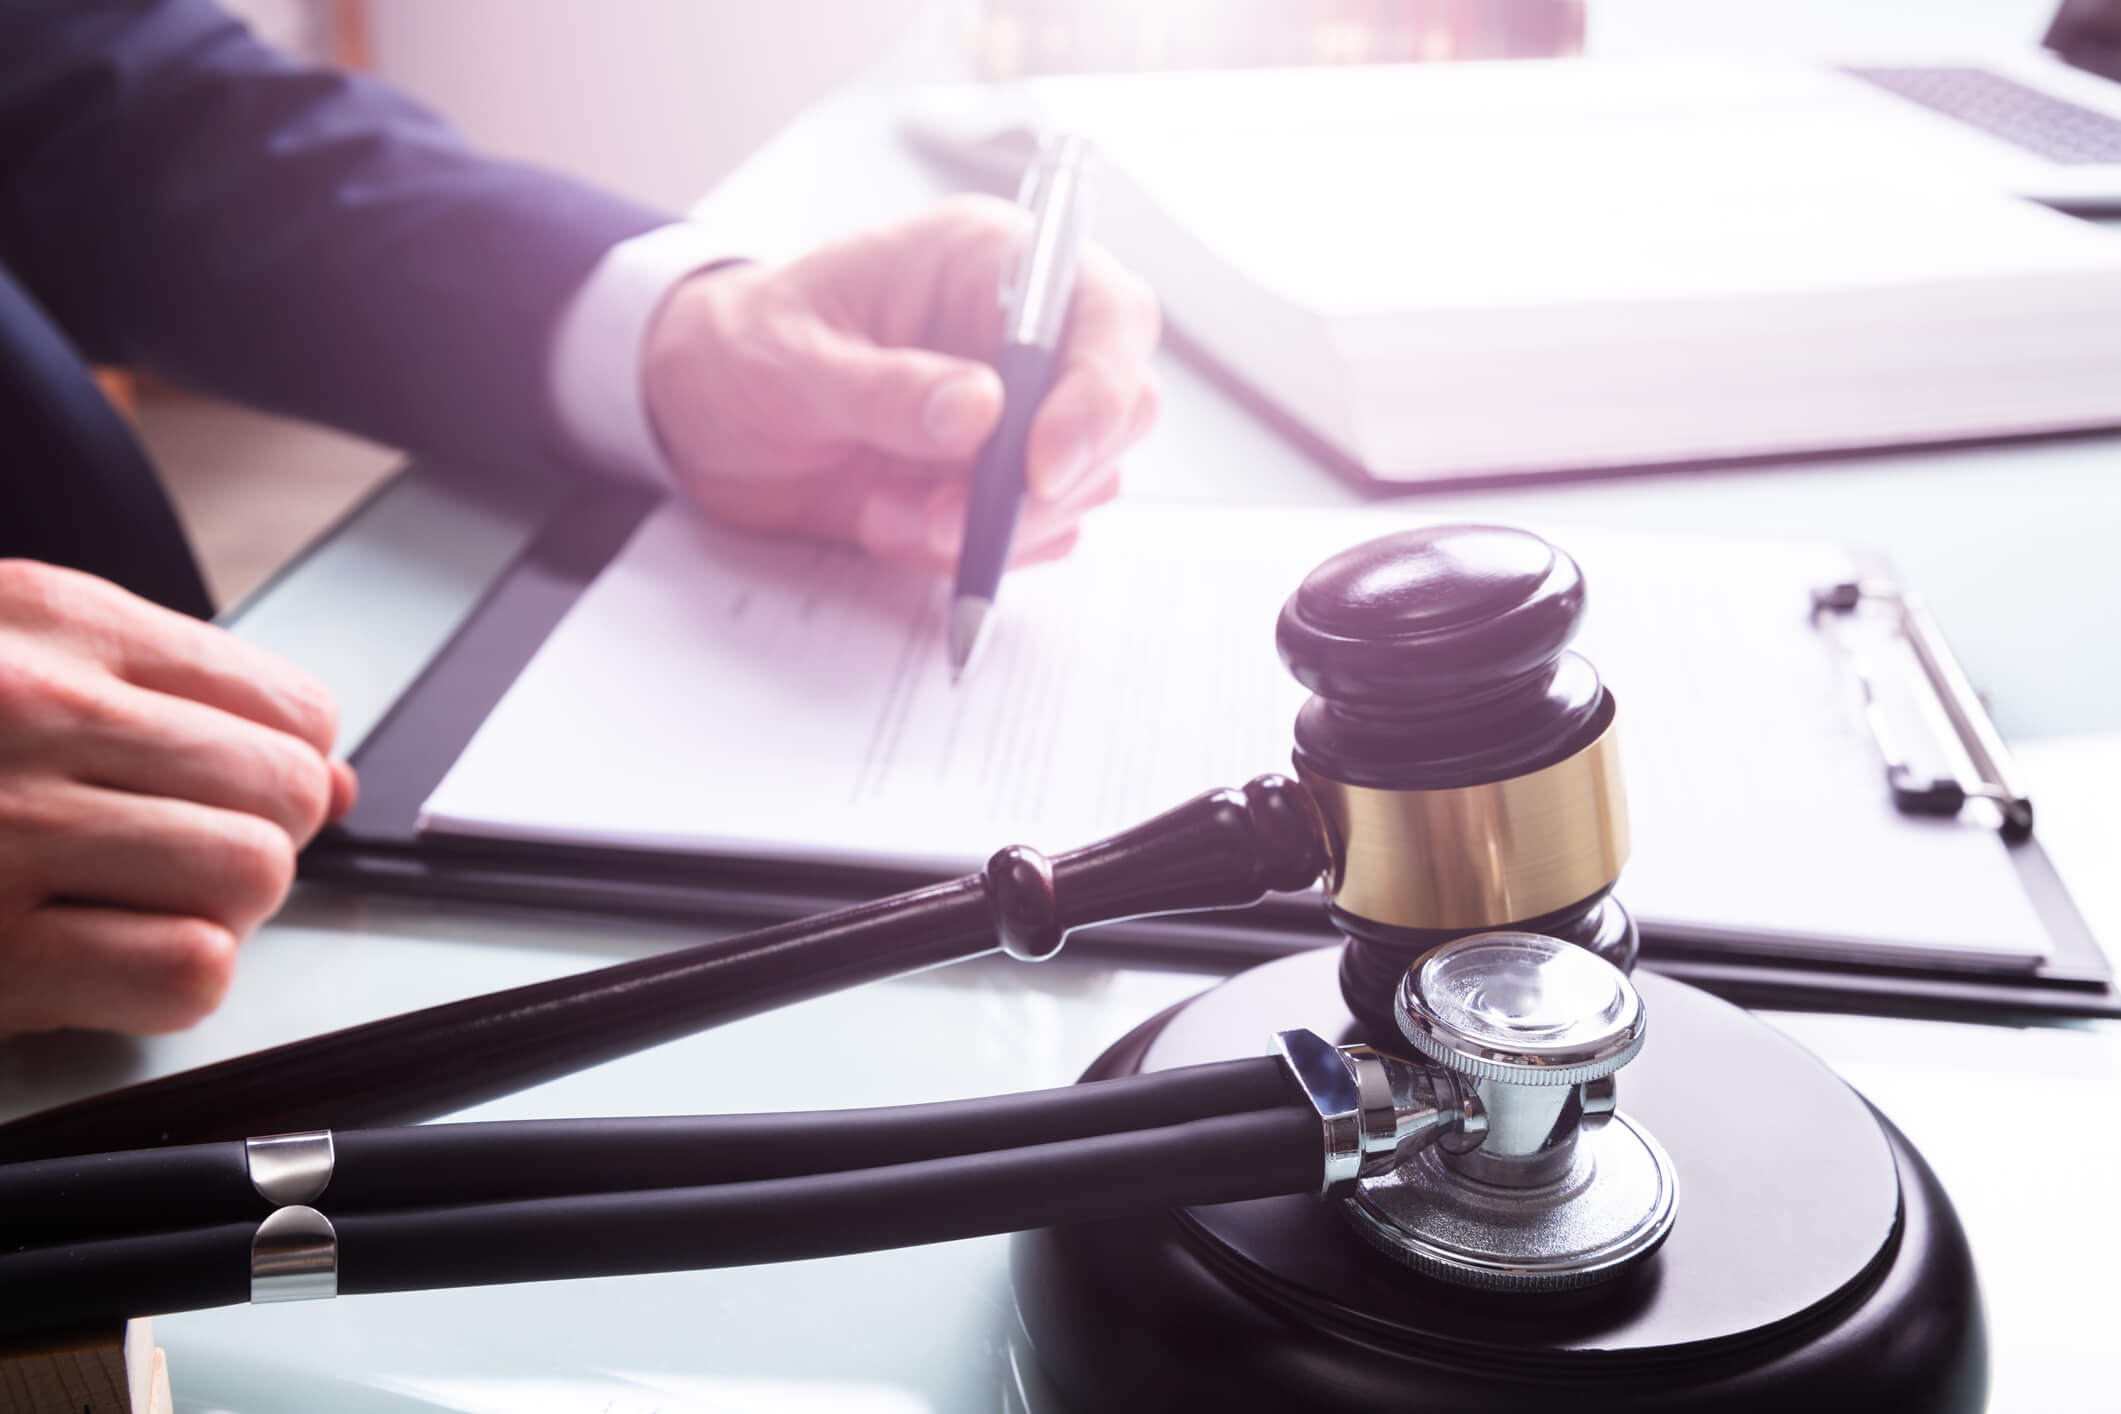 Nagel Rice, LLP discusses everything you need to know about New Jersey's current medical malpractice laws.